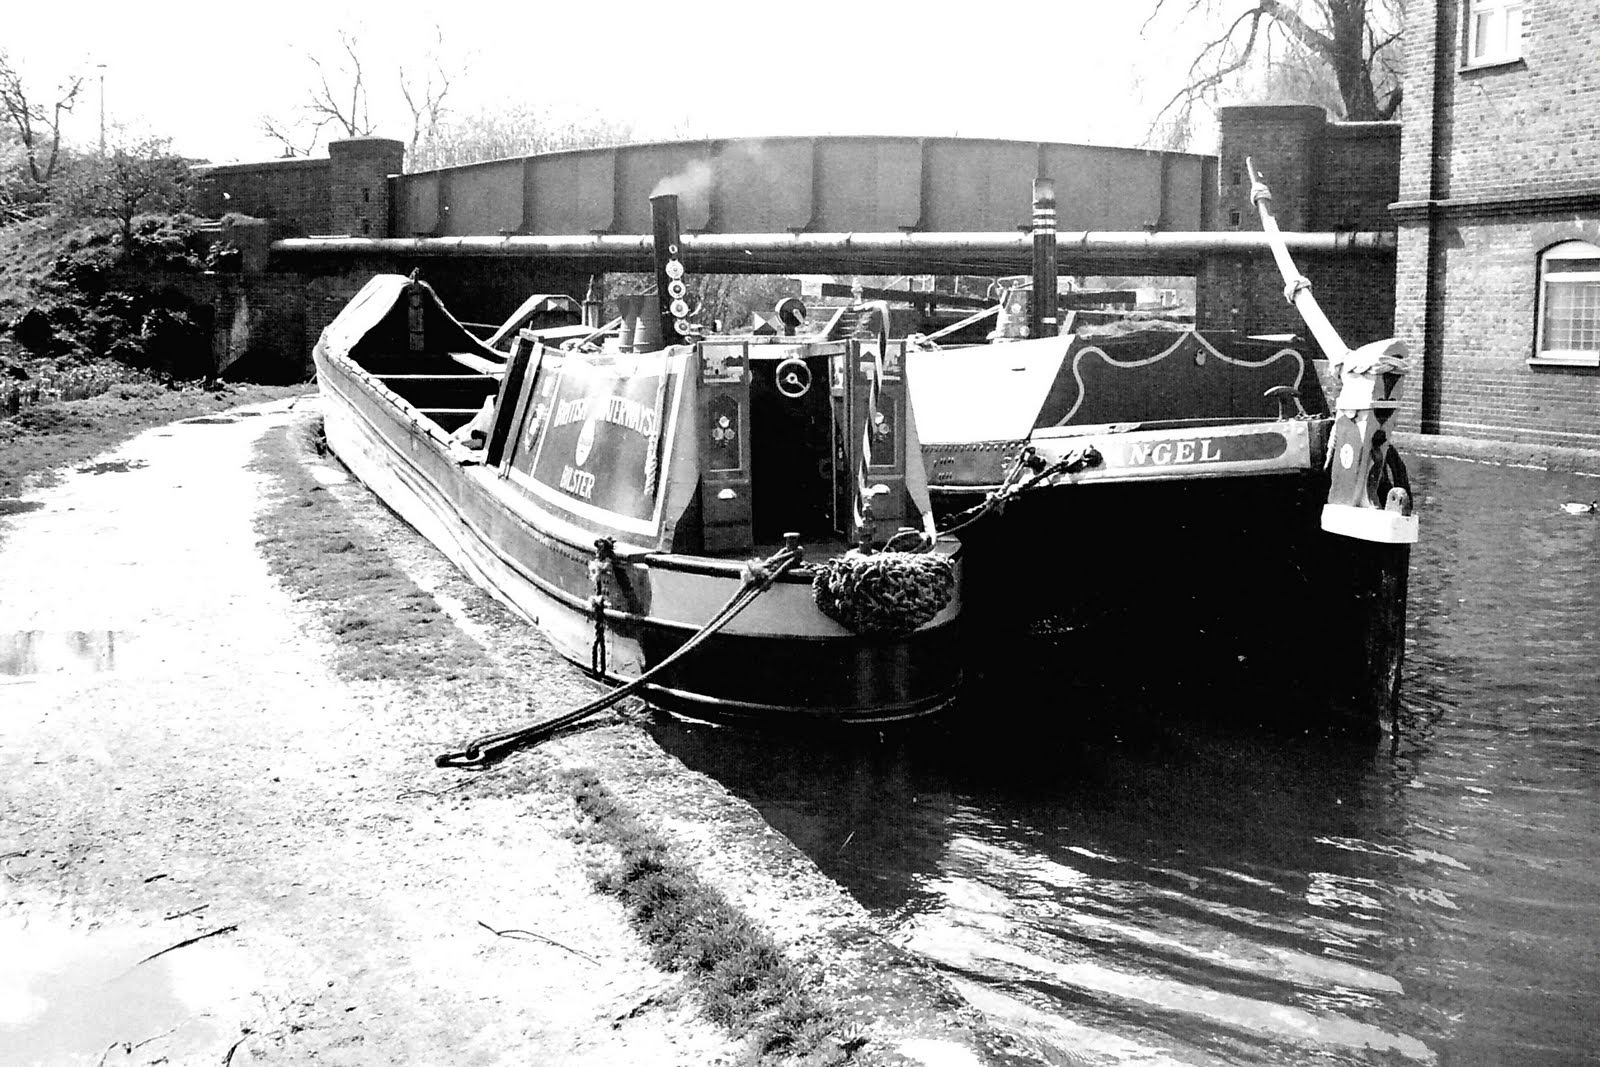 Narrow Boats SICKLE And FLAMINGO: Background To Why There